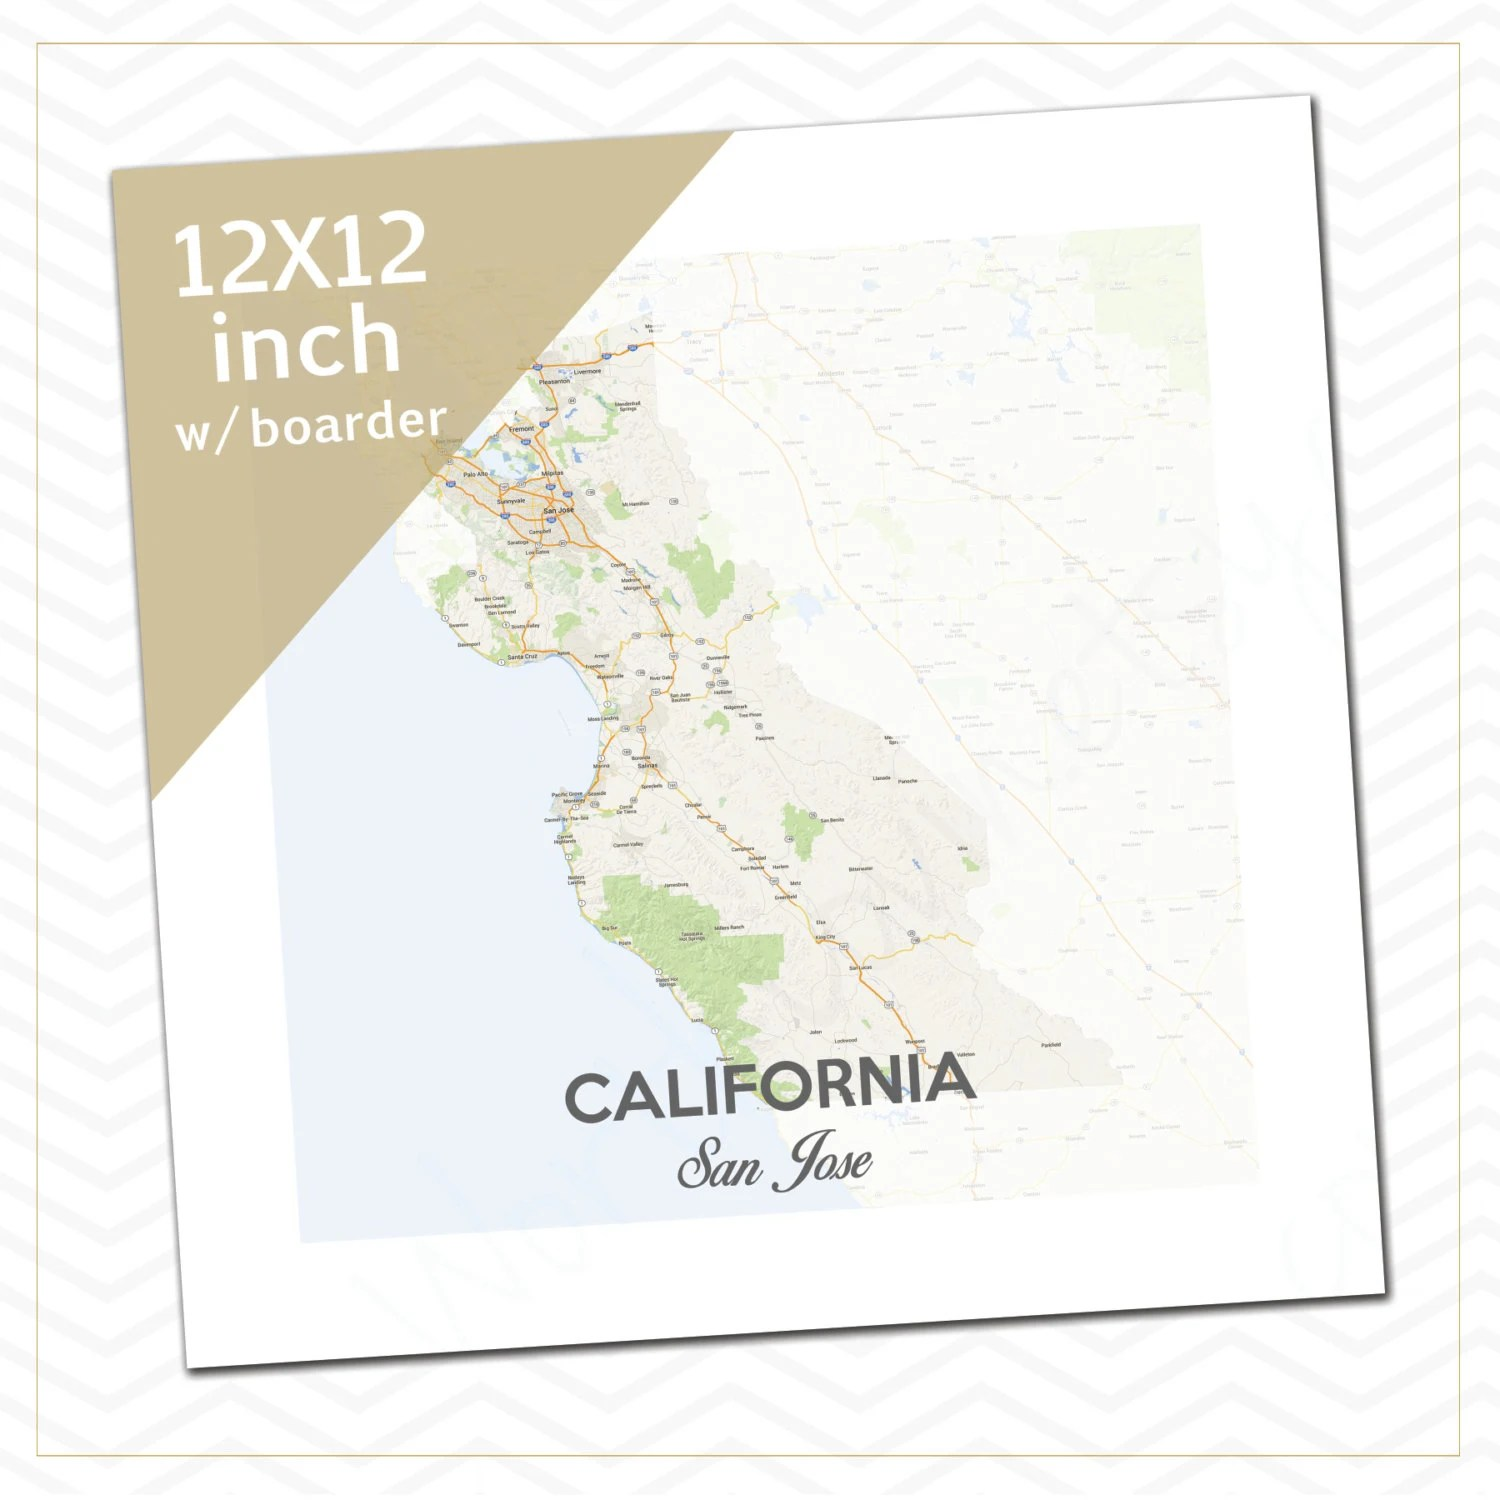 California San Jose Mission Map Mission Boundaries By